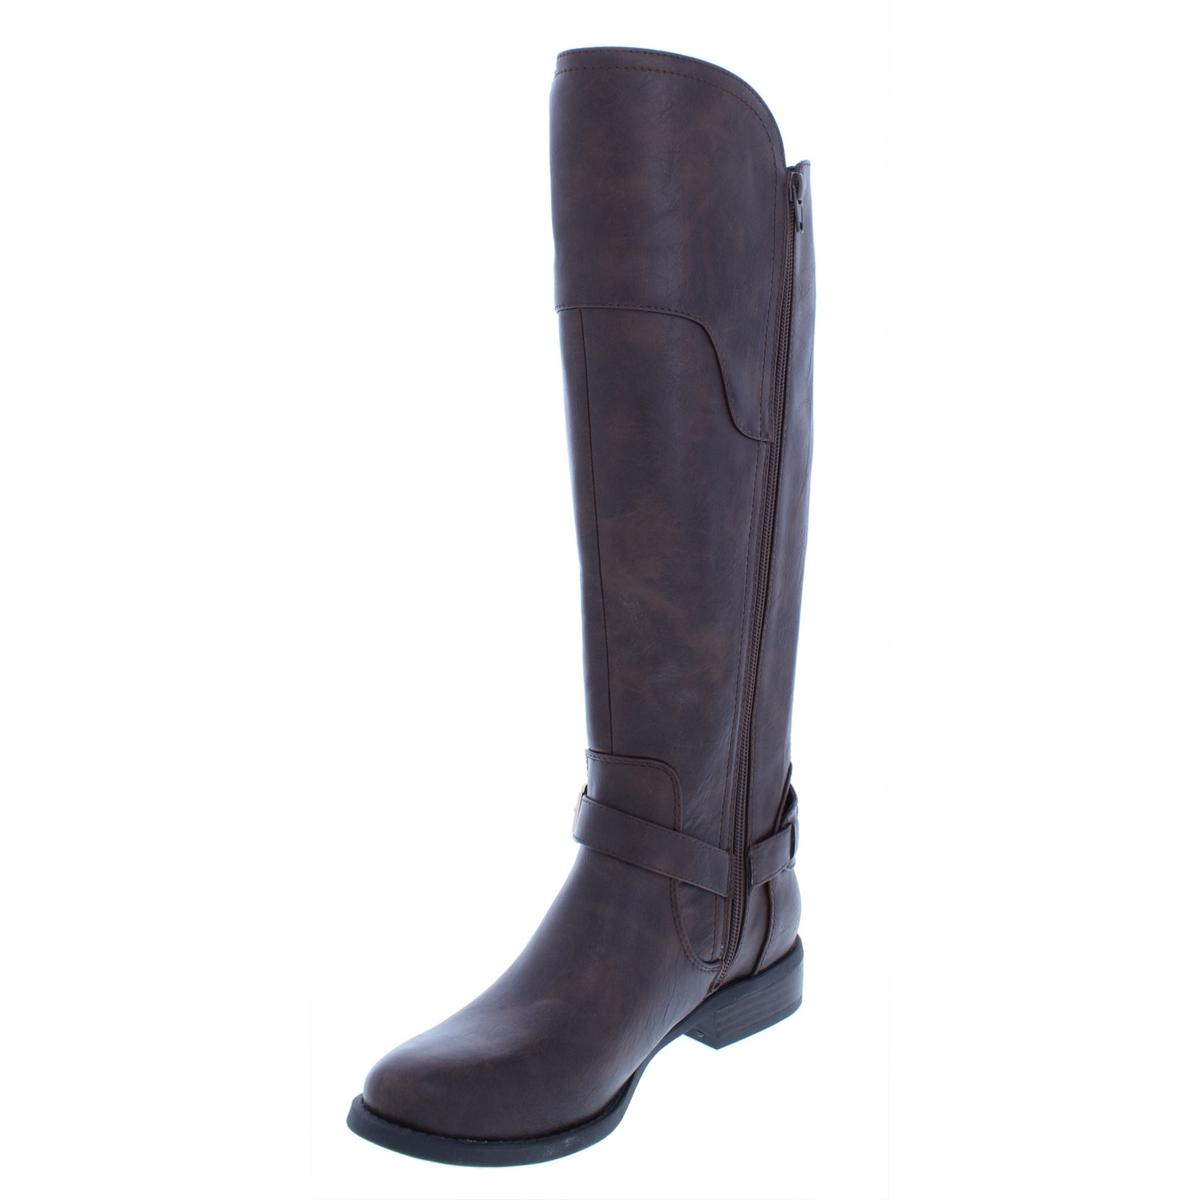 bcf34118c87 Details about G by Guess Womens Harson Faux Leather Riding Over-The-Knee  Boots Shoes BHFO 4599